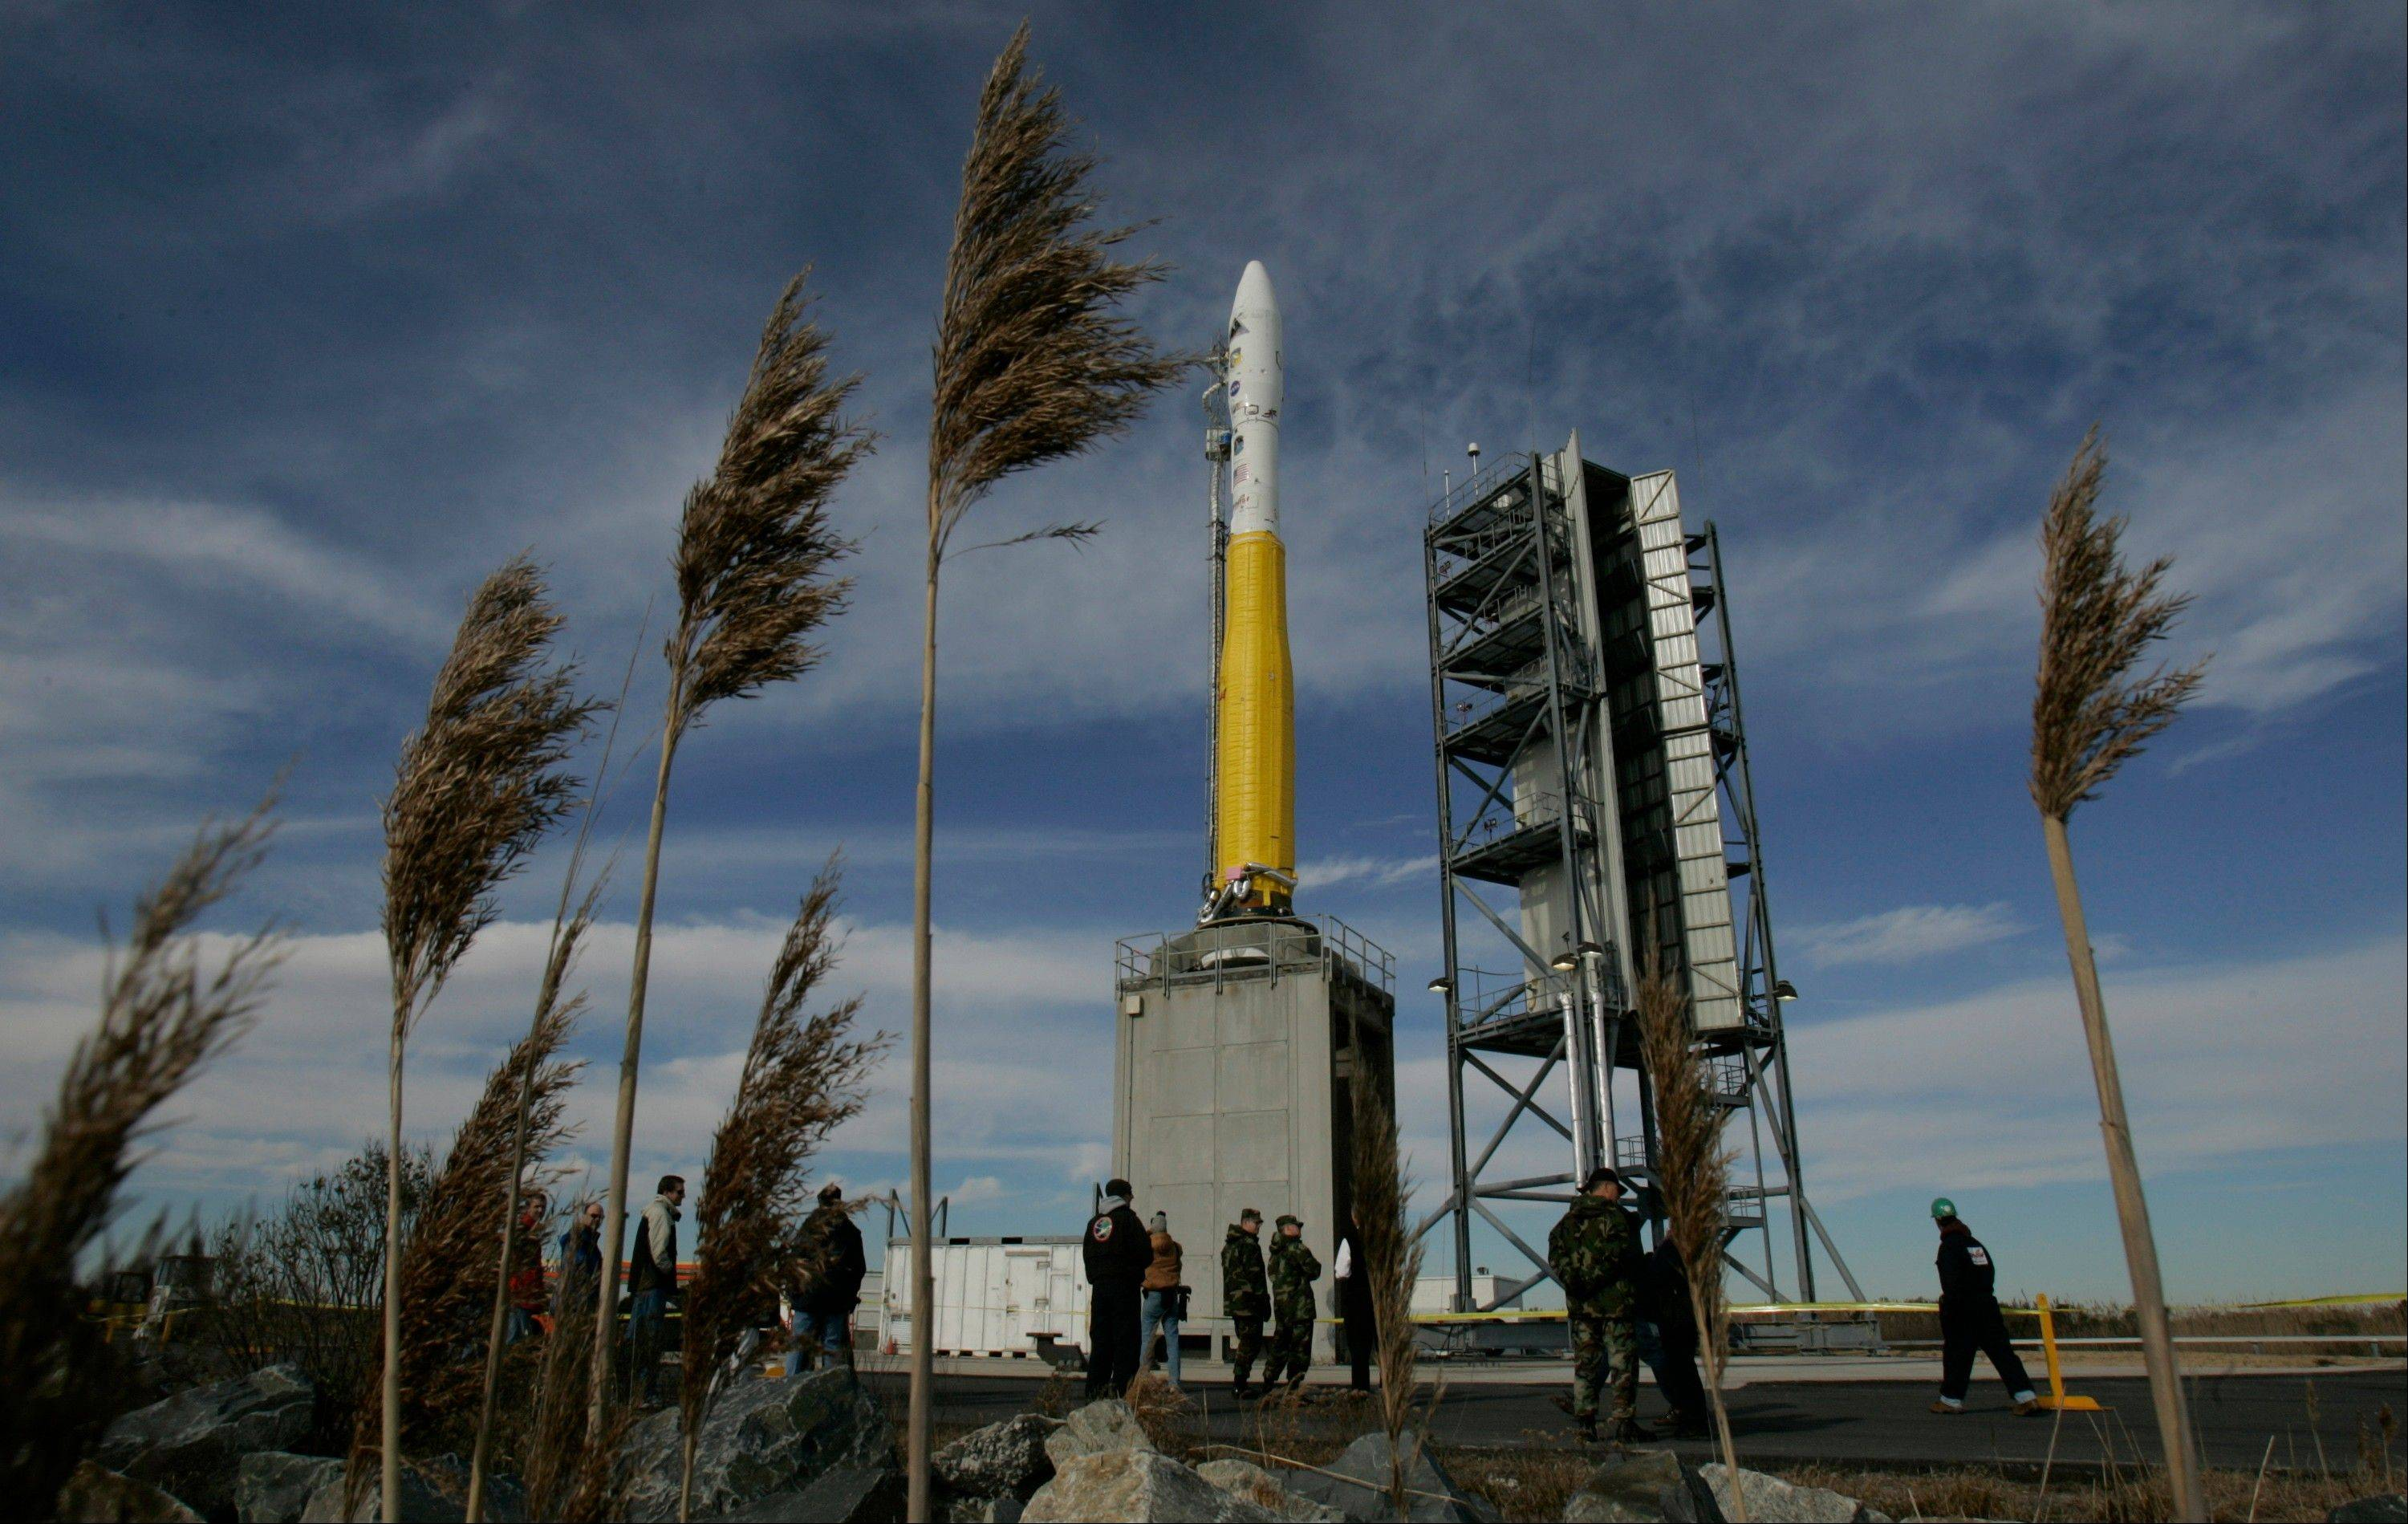 Associated Press/Dec. 9, 2006The Orbital Science Corp Minotaur 1 rocket sits on its launch pad at NASA's Wallops Flight Facility in Wallops Island, Va.